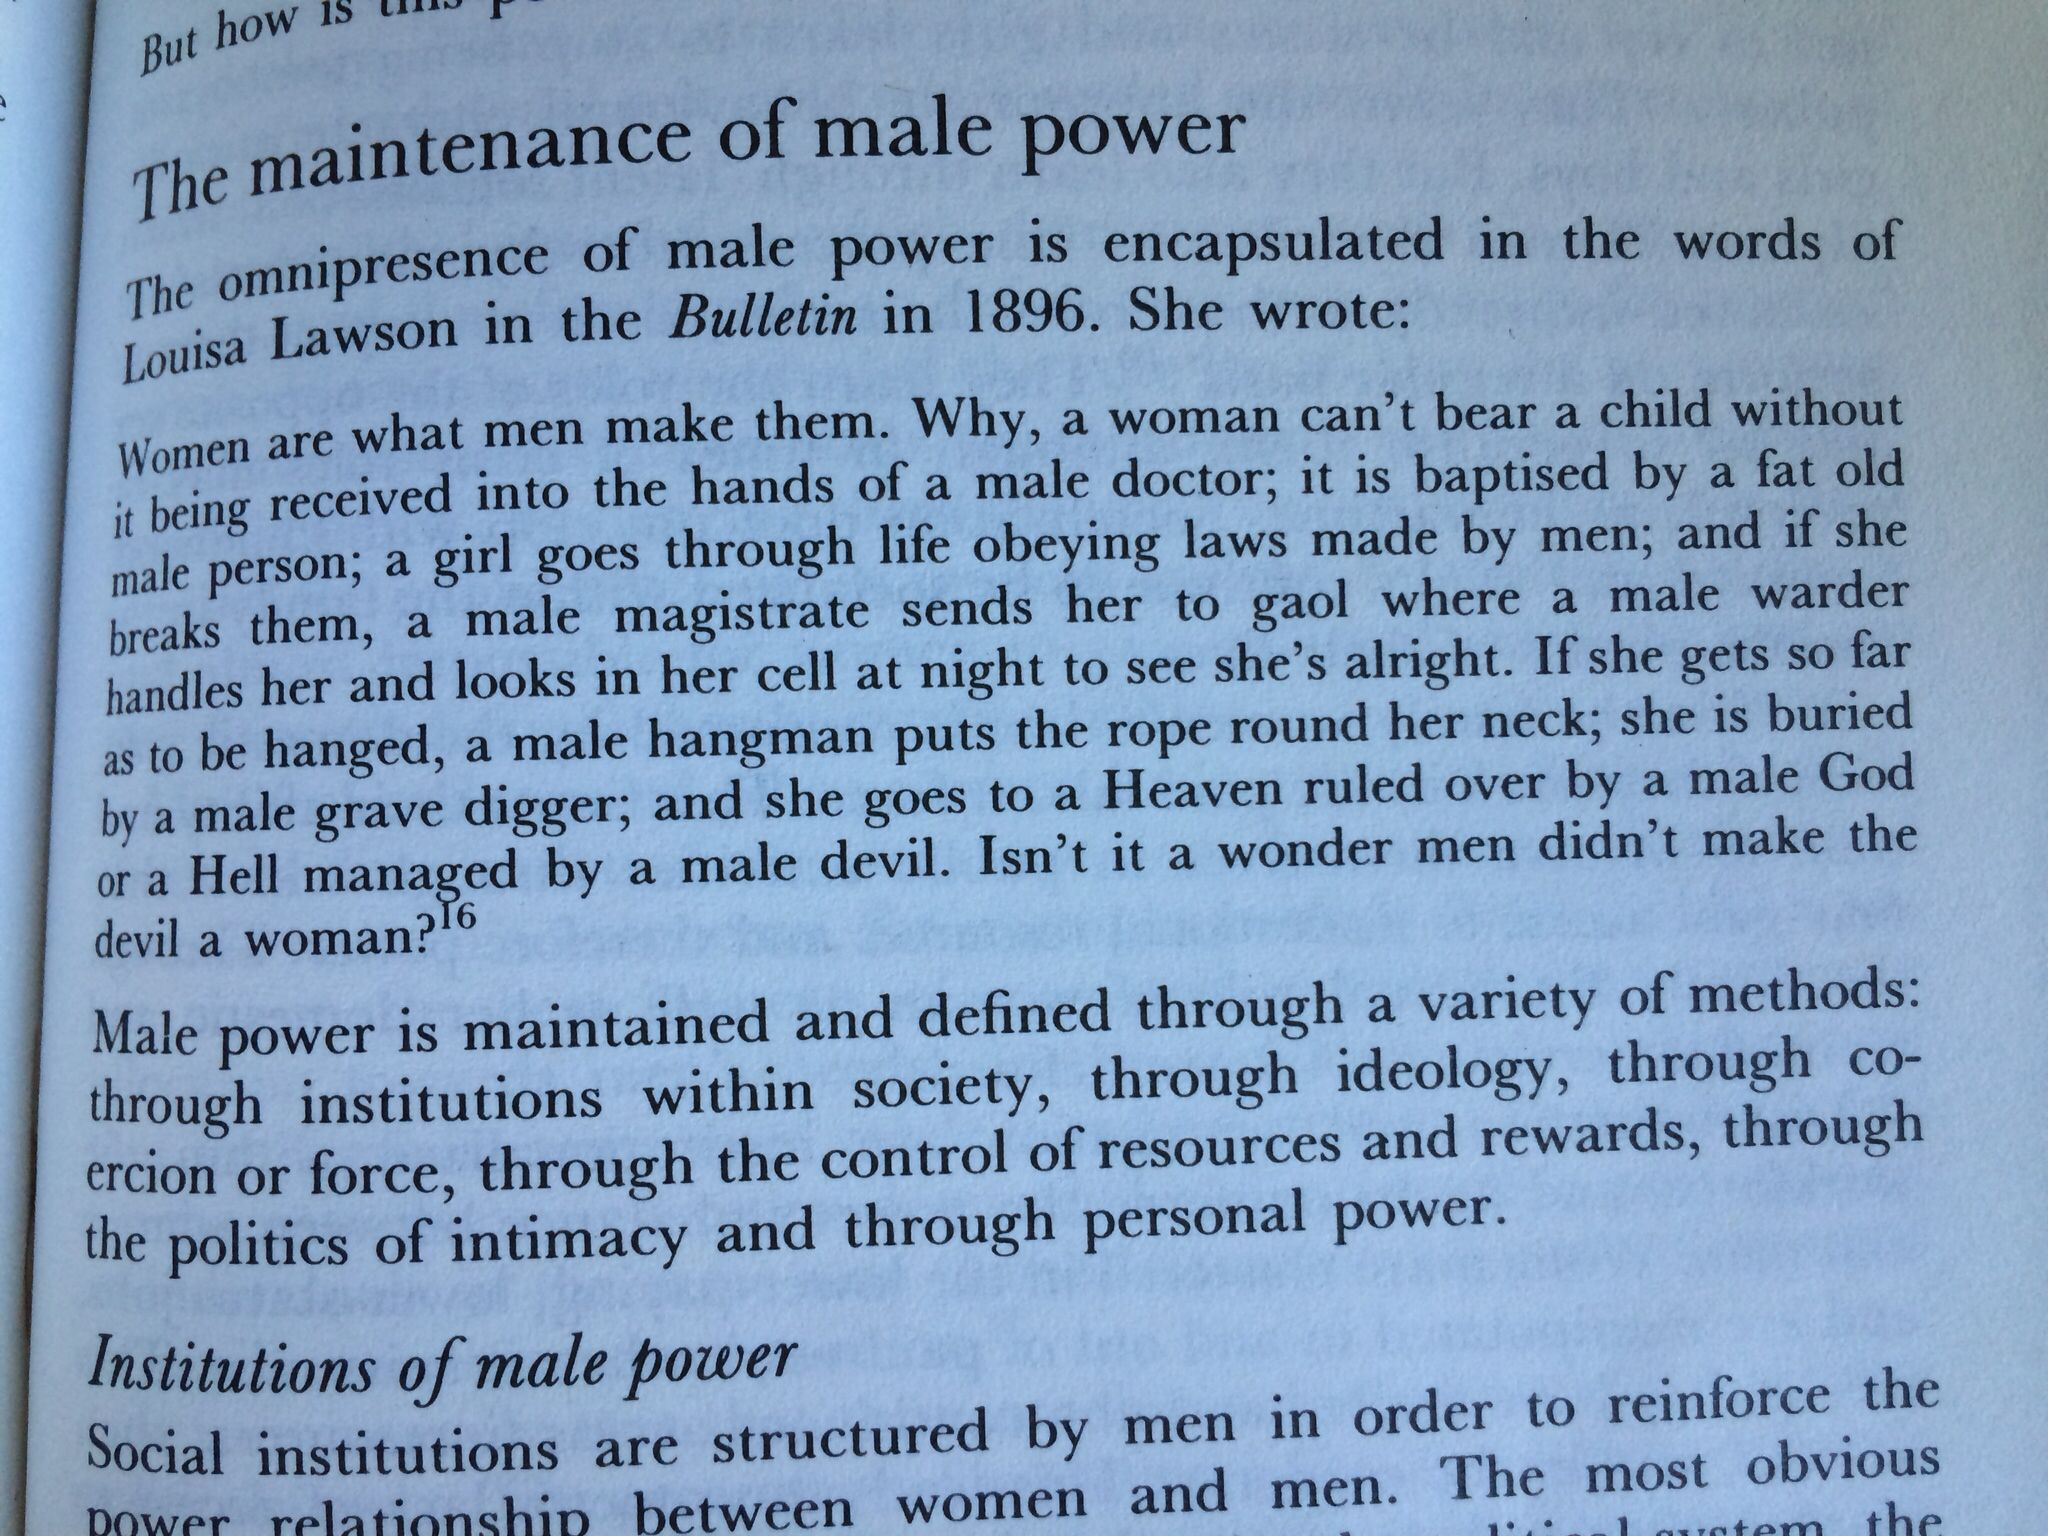 Feminist perspective: the maintenance of male power ...Dr Robyn Rowland